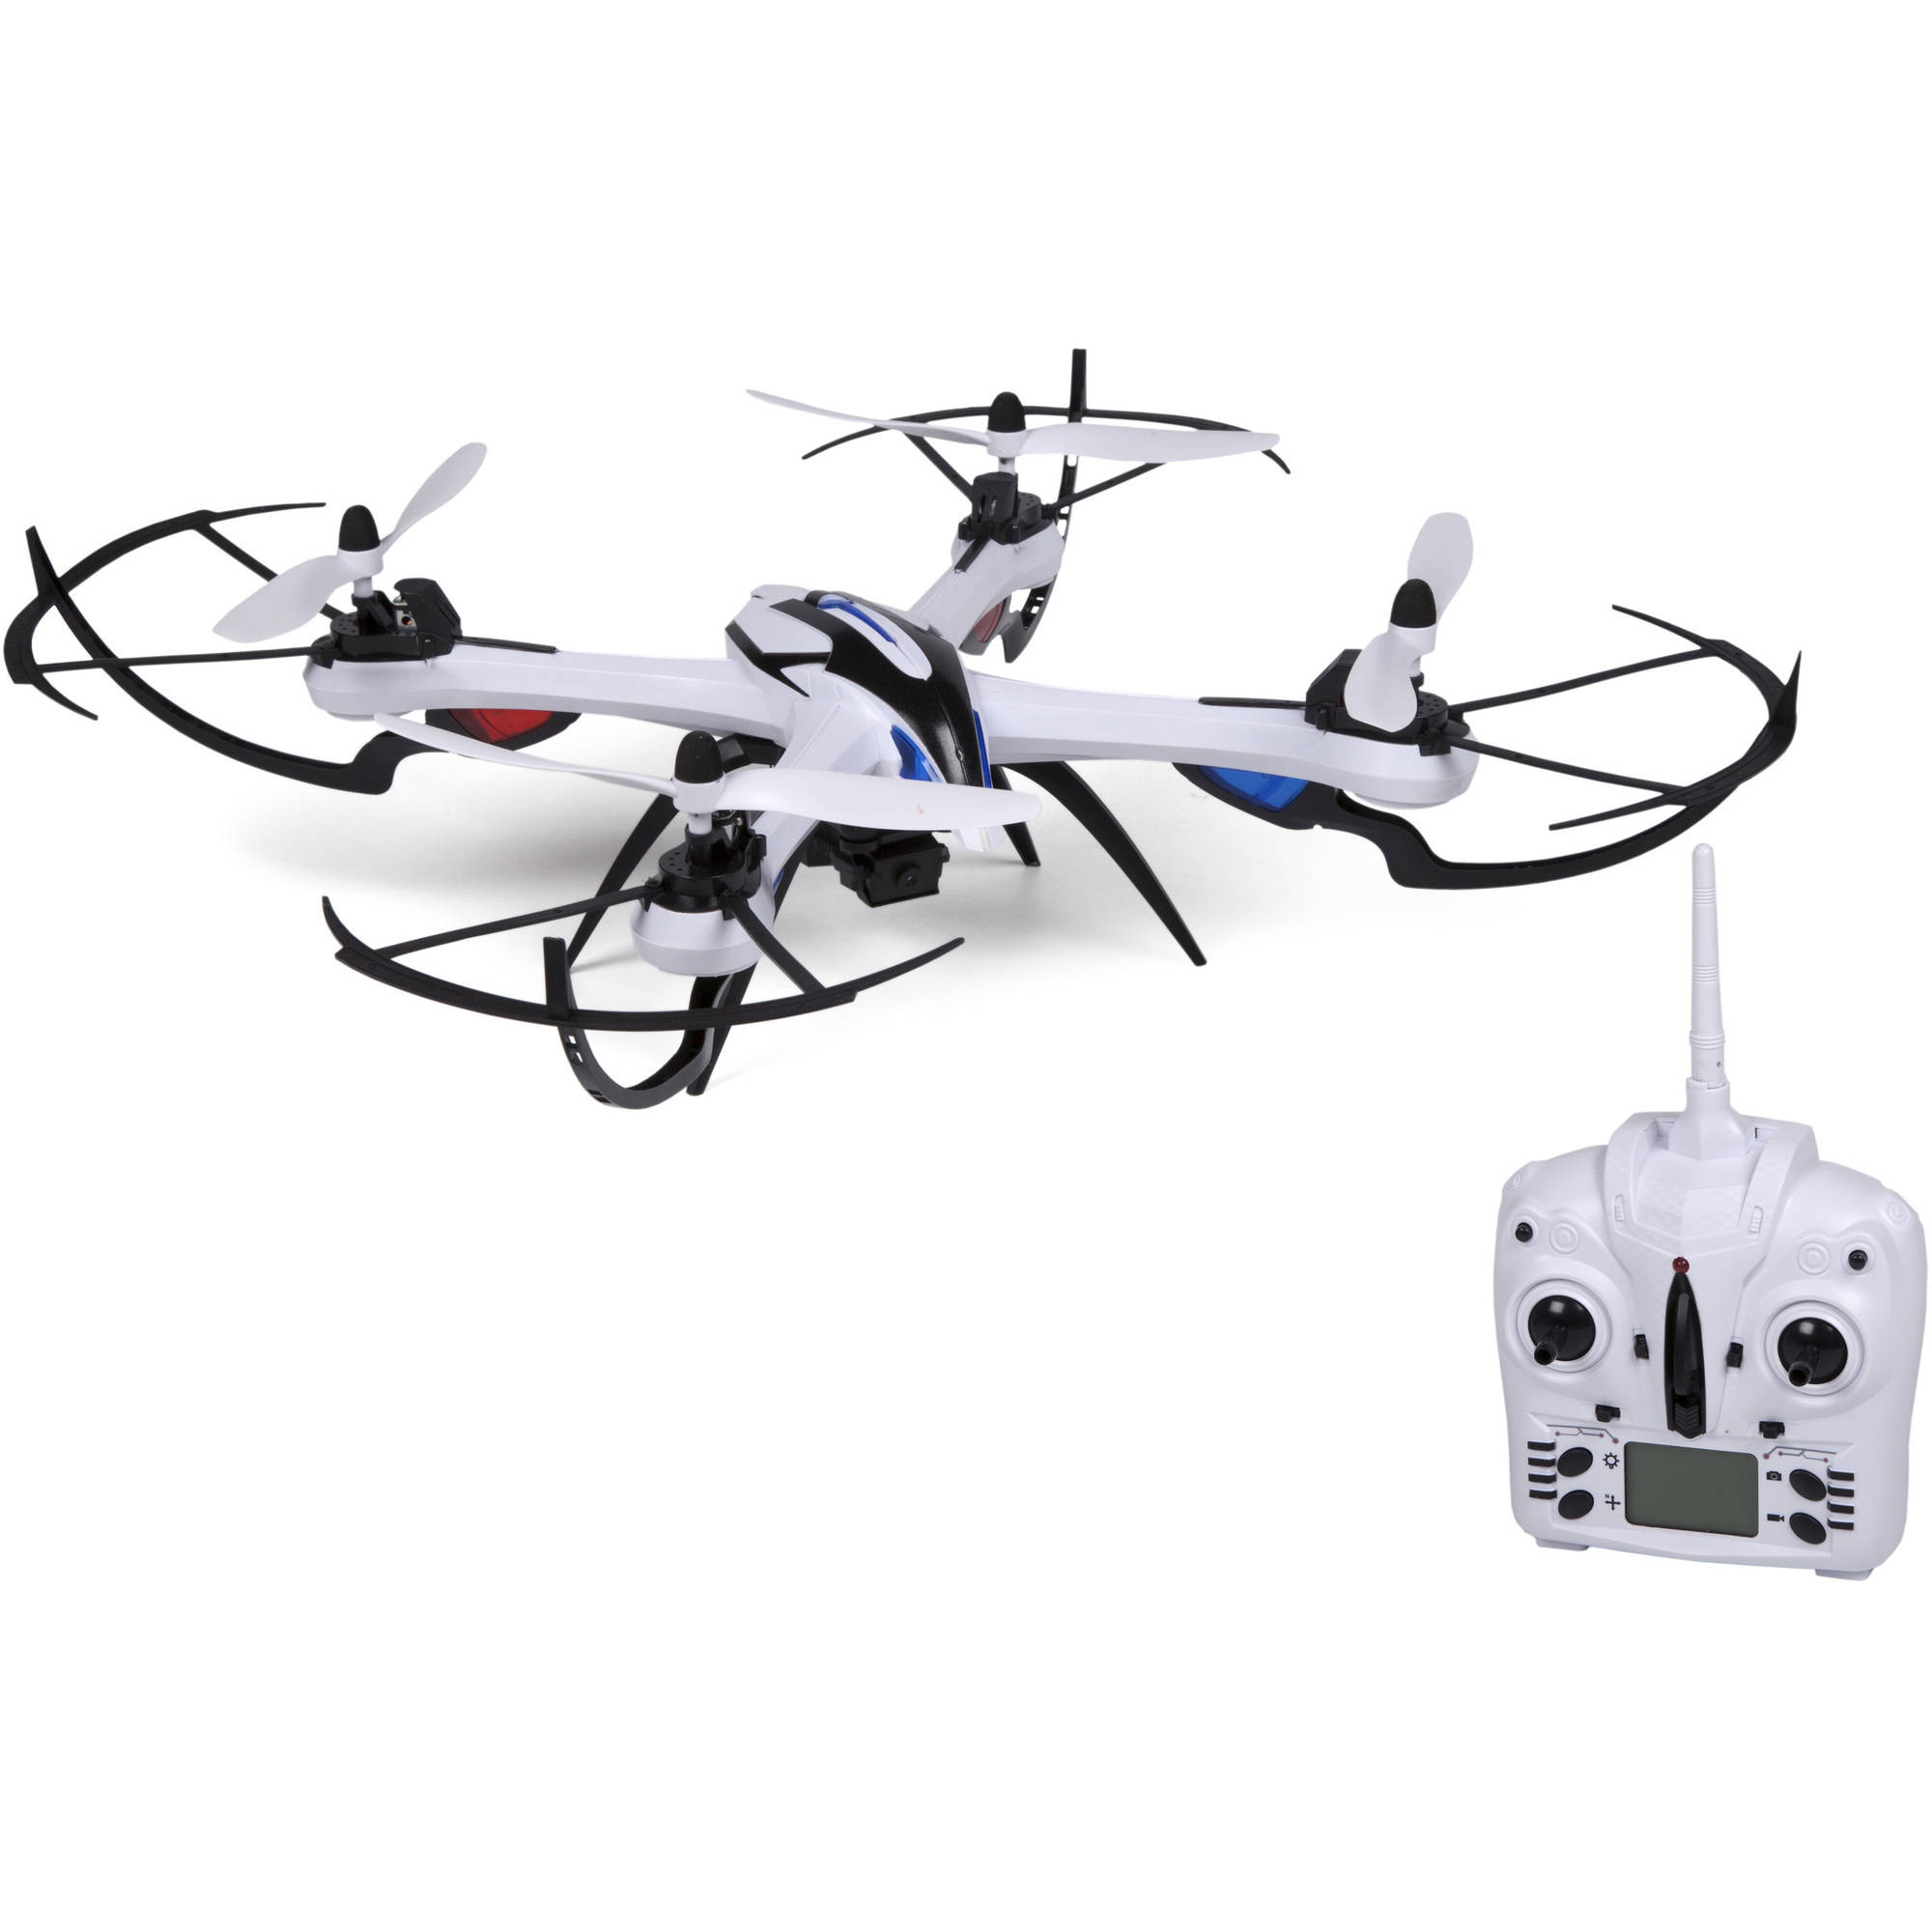 Prowler Spy Drone Video Camera and Photo 2.4GHz R C Quadcopter by World Tech Toys